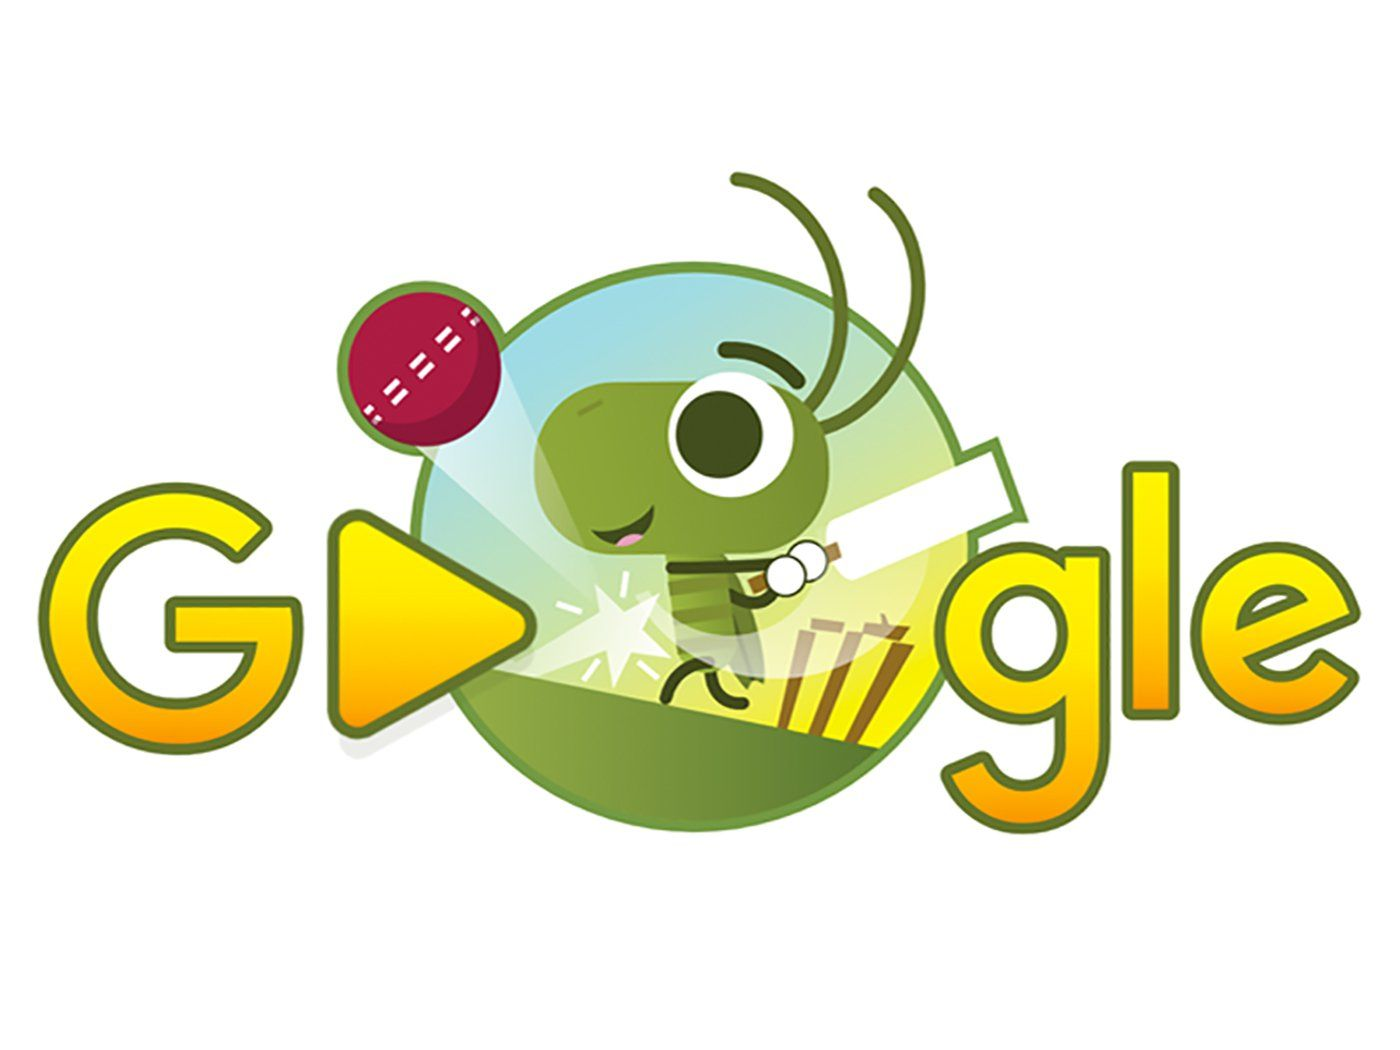 This Google Doodle Cricket Game Is Today S Best Distraction Google Doodles Cricket Games Doodles Games